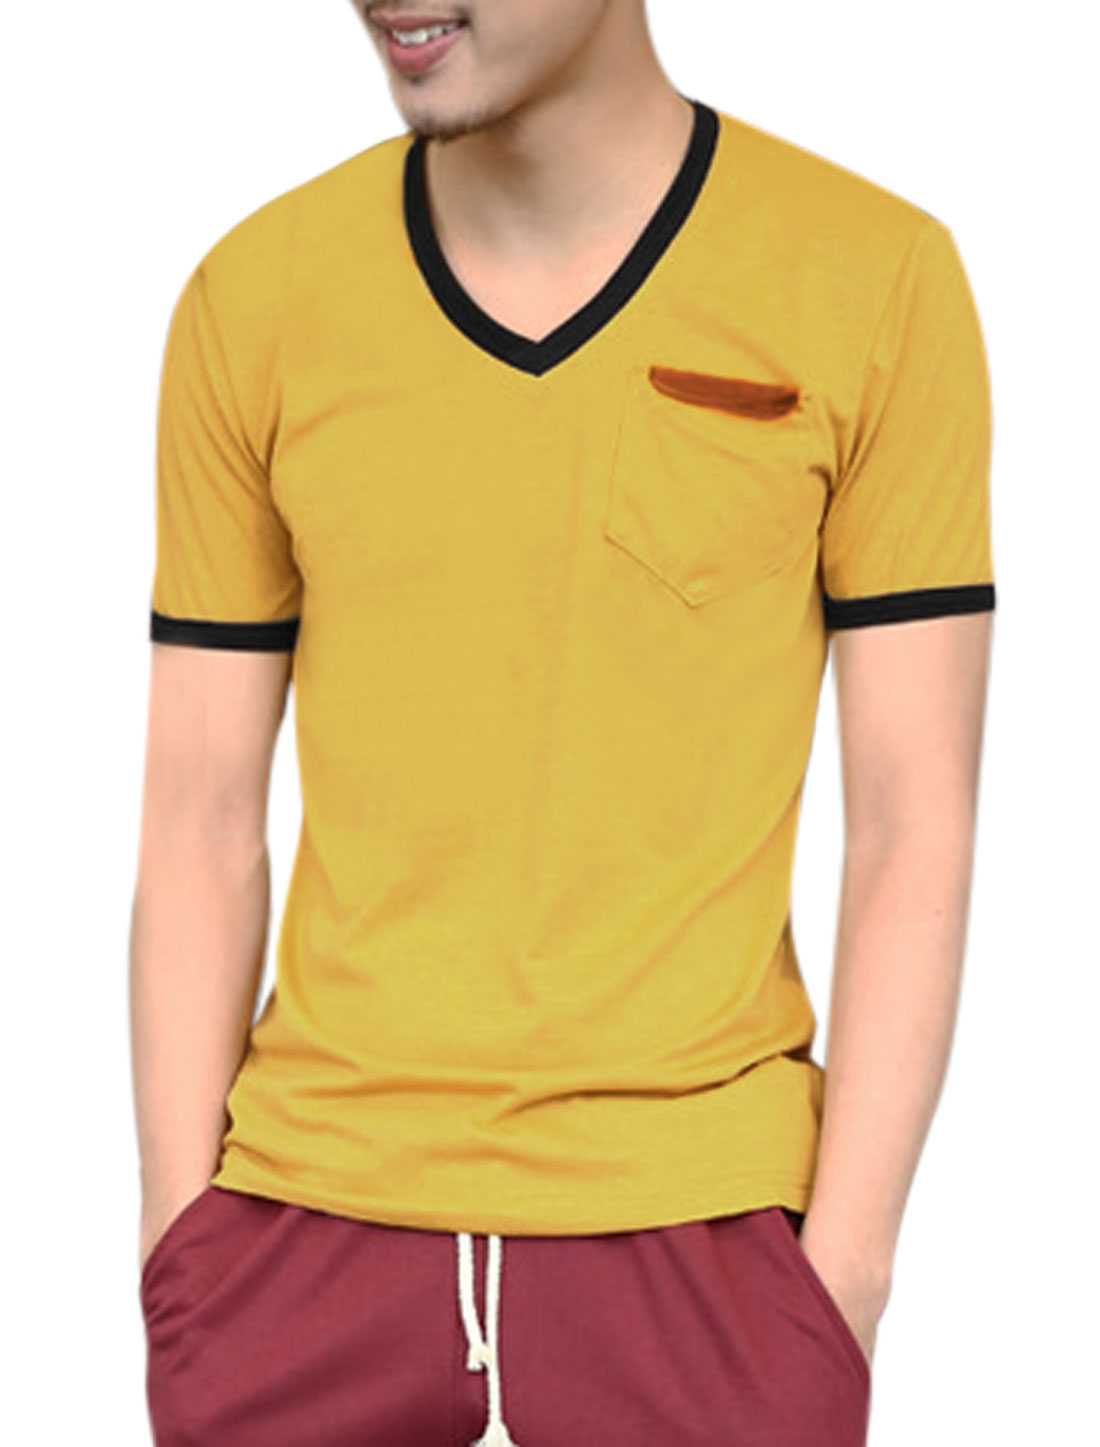 Men Single Breast Pocket Panel Design Cozy Fit Tee Yellow M